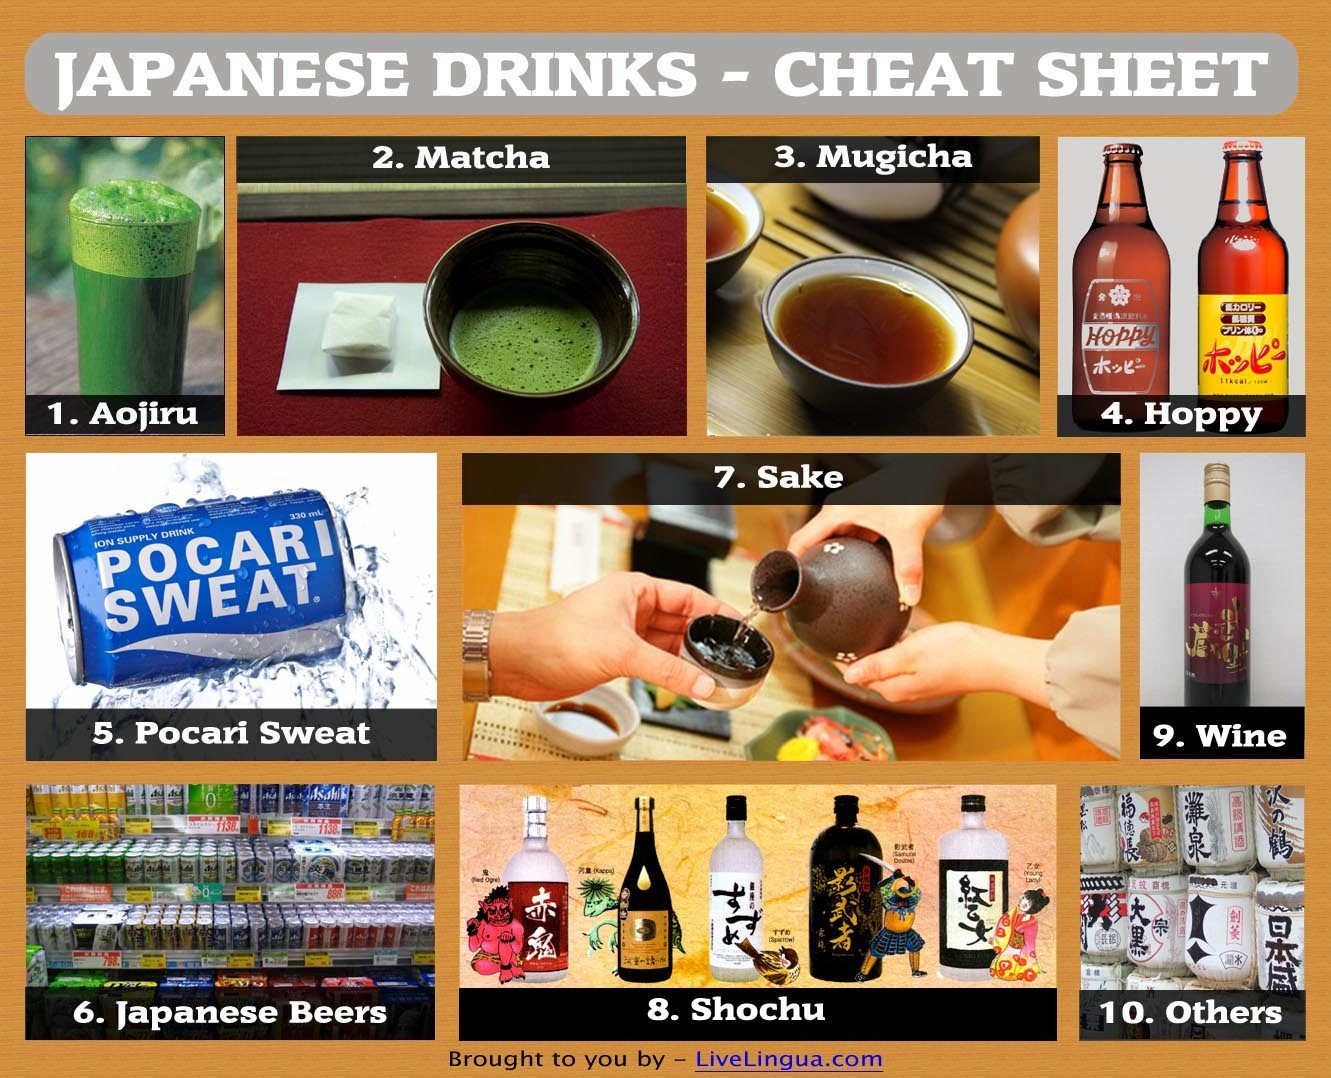 Japanese Drinks- Cheat Sheet